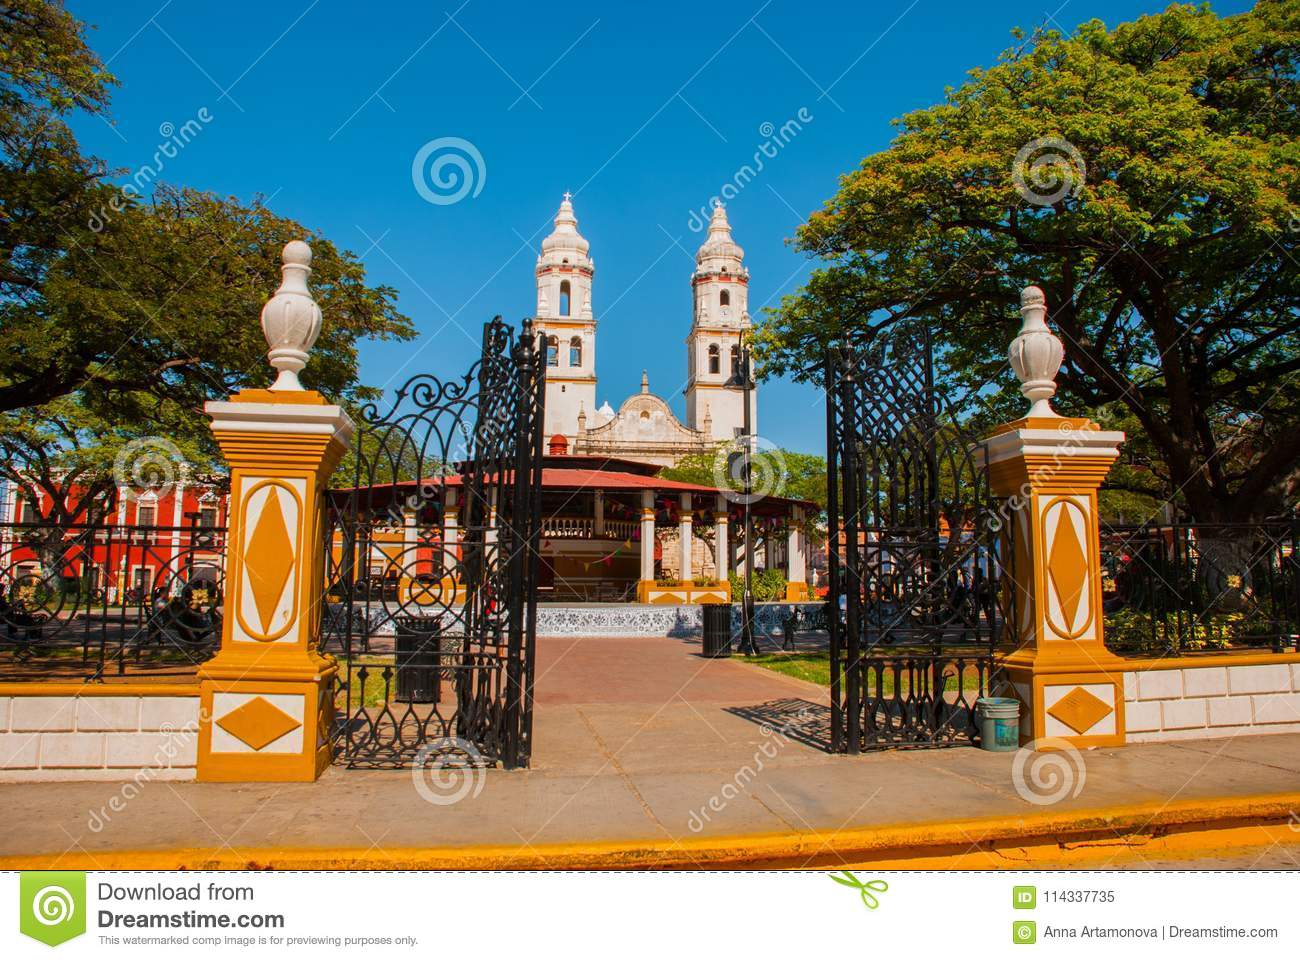 Cathedral, Campeche, Mexico: Plaza de la Independencia, in Campeche, Mexico`s Old Town of San Francisco de Campeche